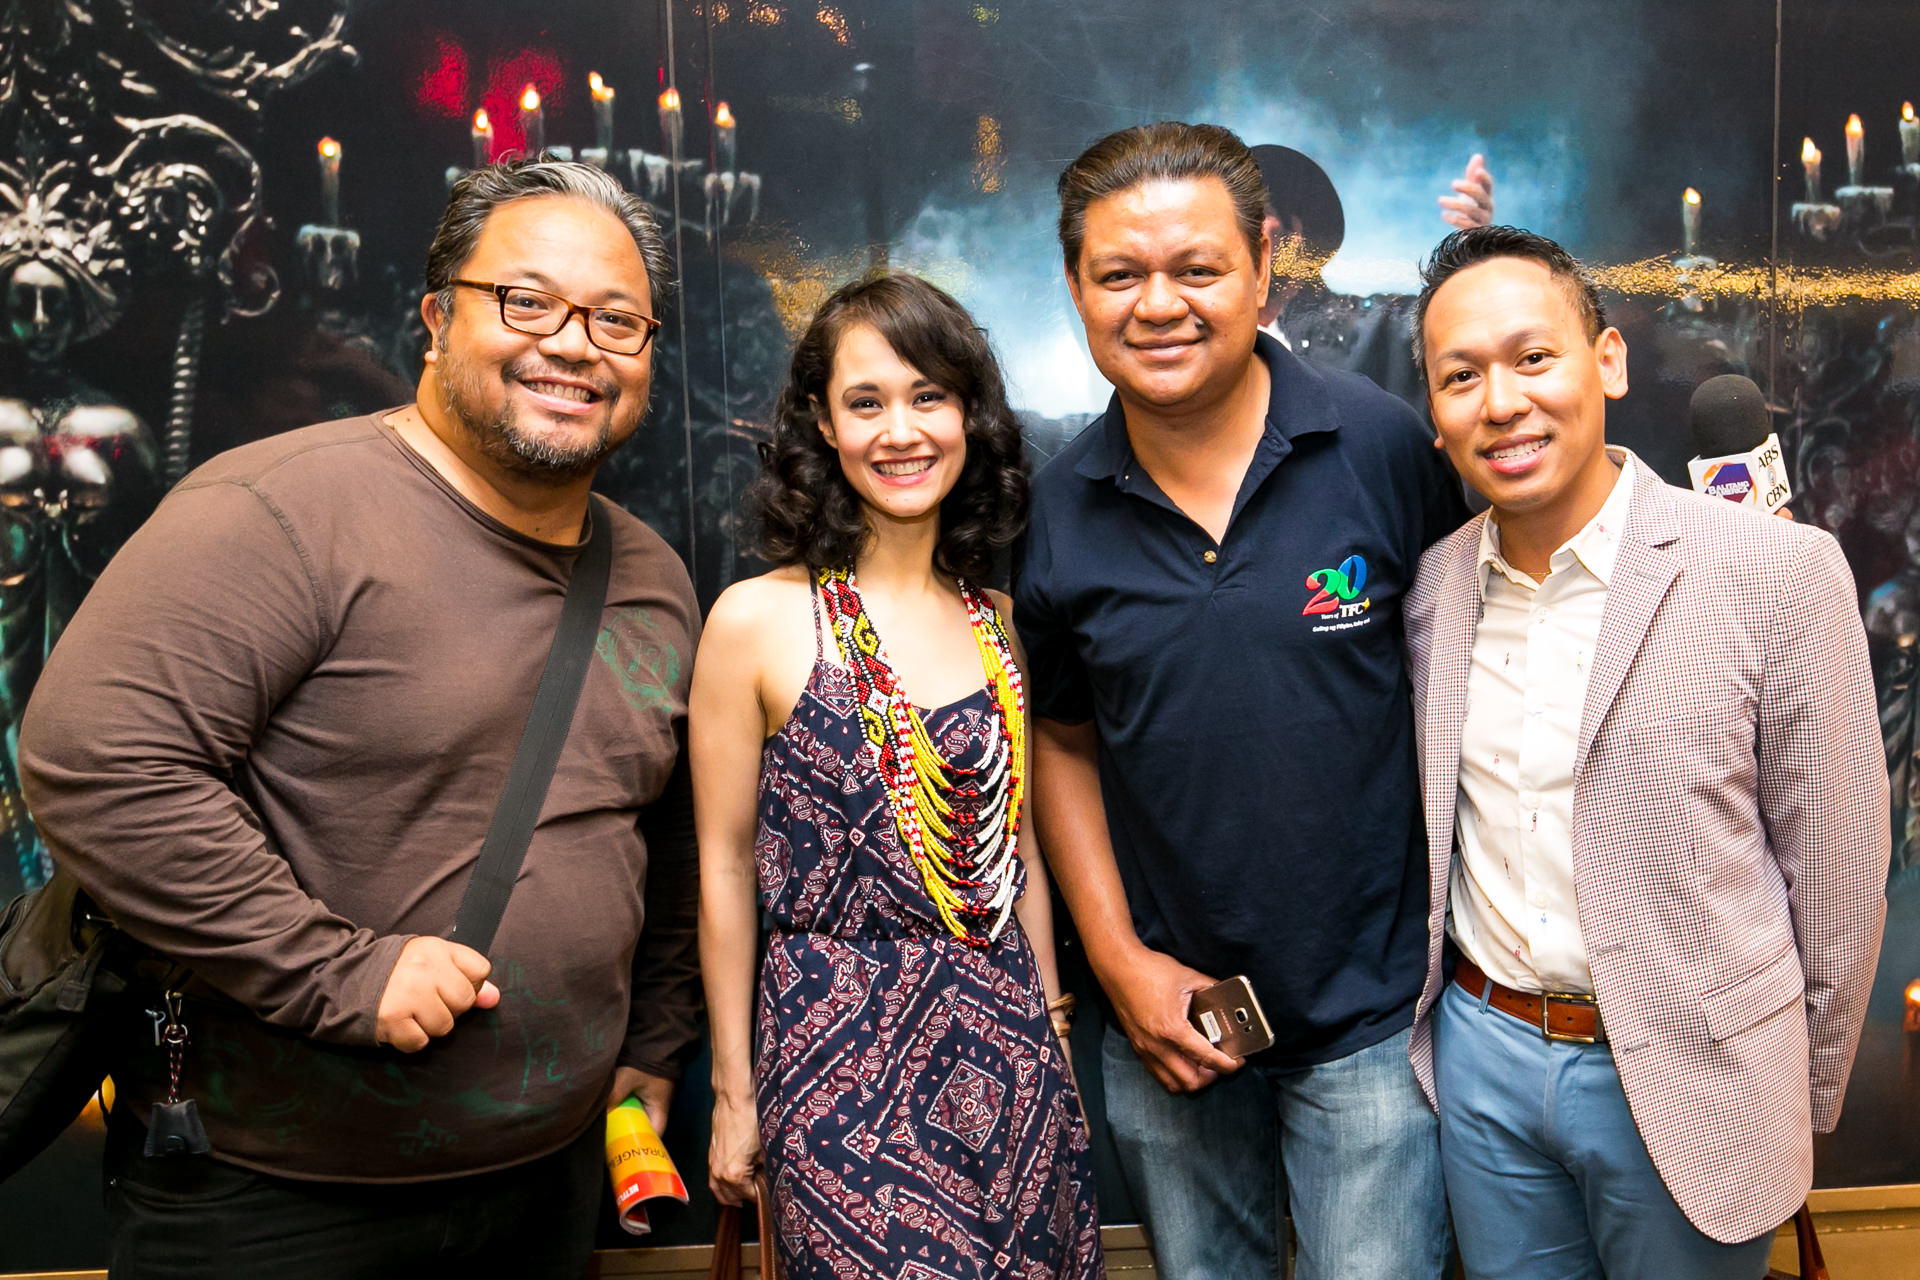 The Phantom of the Opera star Ali Ewoldt, with Tony Award winner Jhett Tolentino, and journalists Momar Visaya and Don Tagala.